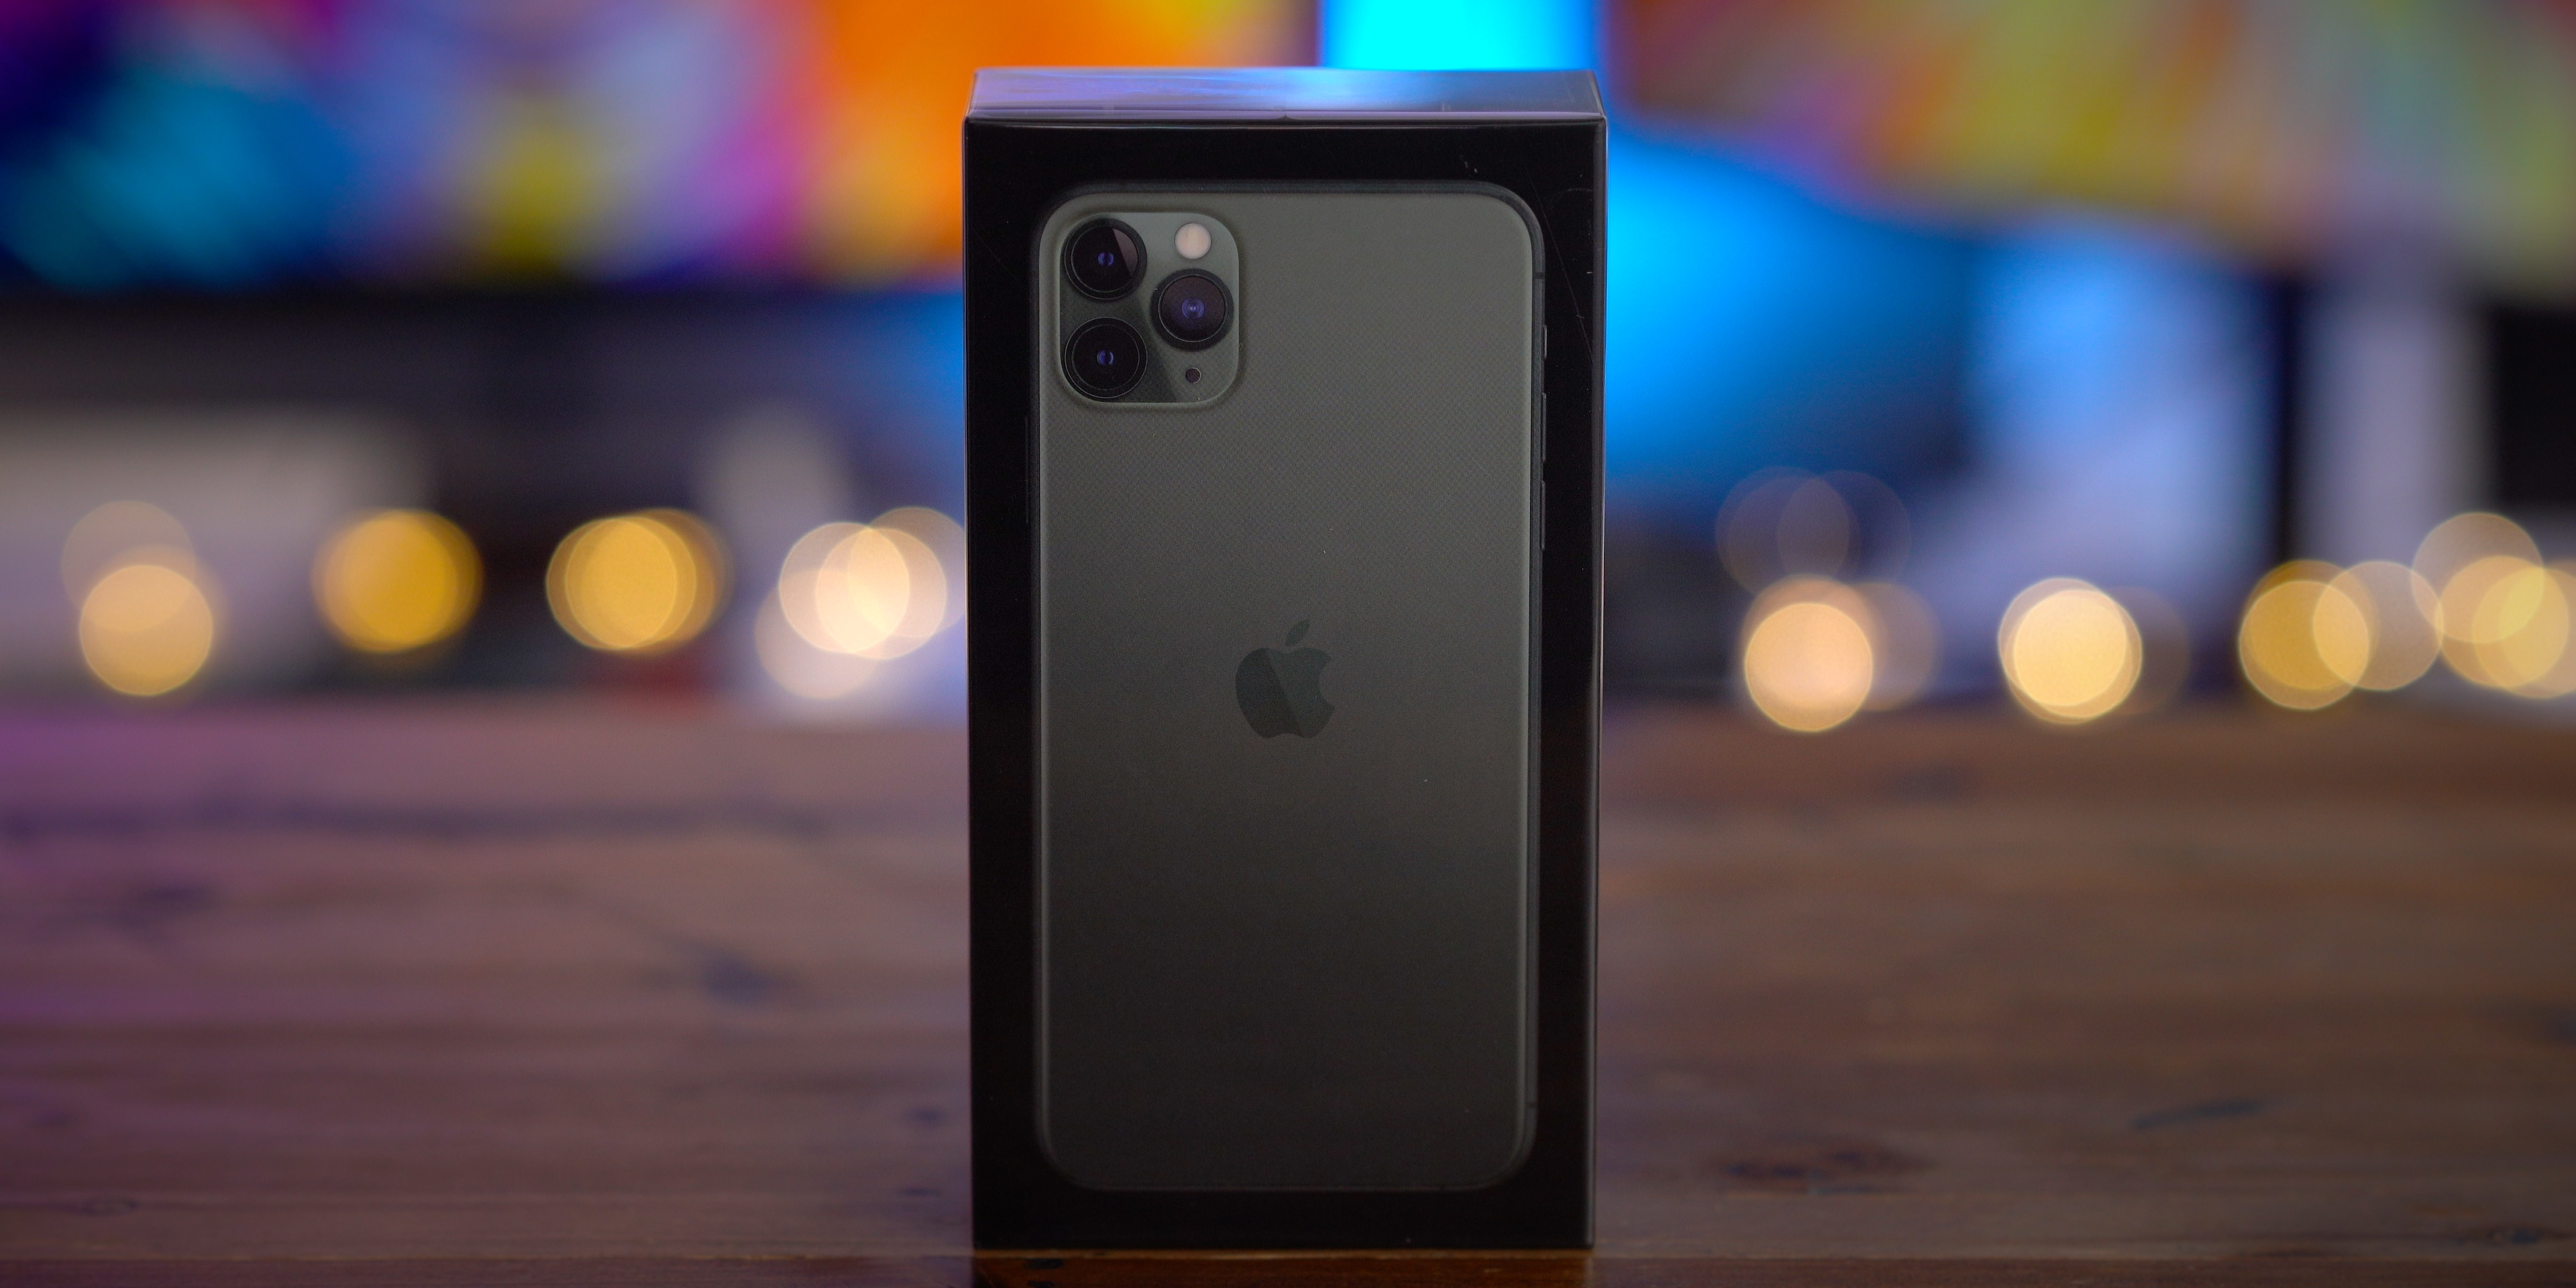 9to5Rewards: Last chance to win iPhone 11 Pro Max + 25% off totallee cases [Giveaway]